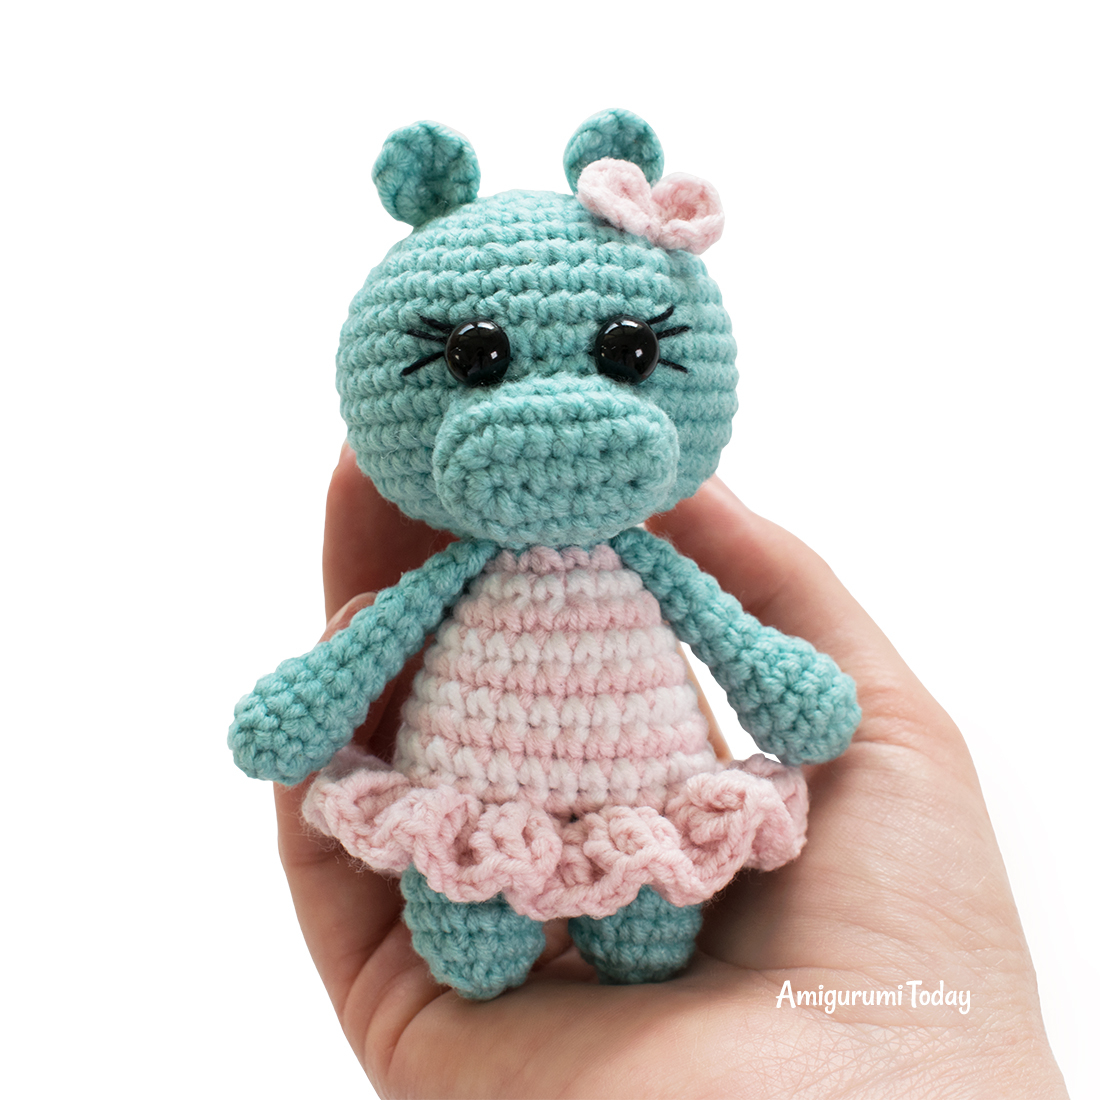 Cuddle Me Sheep amigurumi pattern - Amigurumi Today | 1100x1100